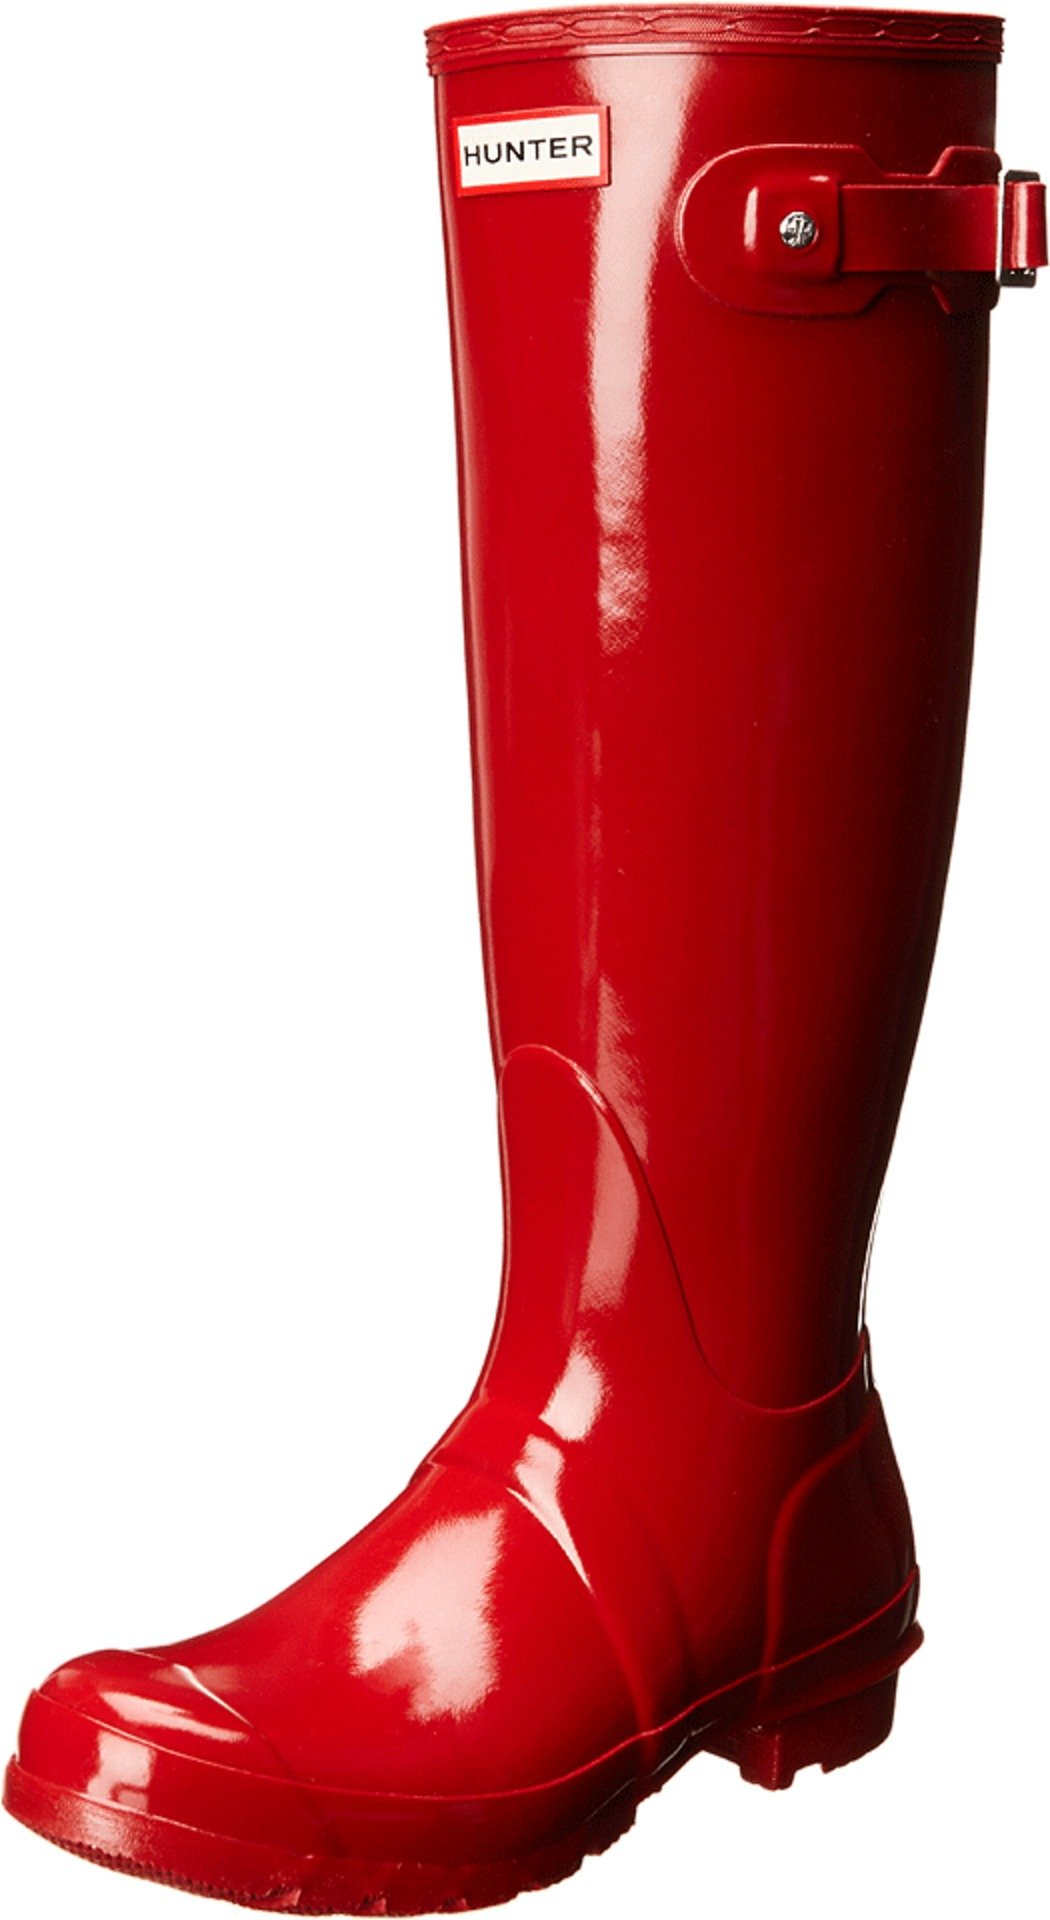 Hunter Women's Original Tall Gloss Snow Boot, Military Red, 8 B(M) US by Hunter